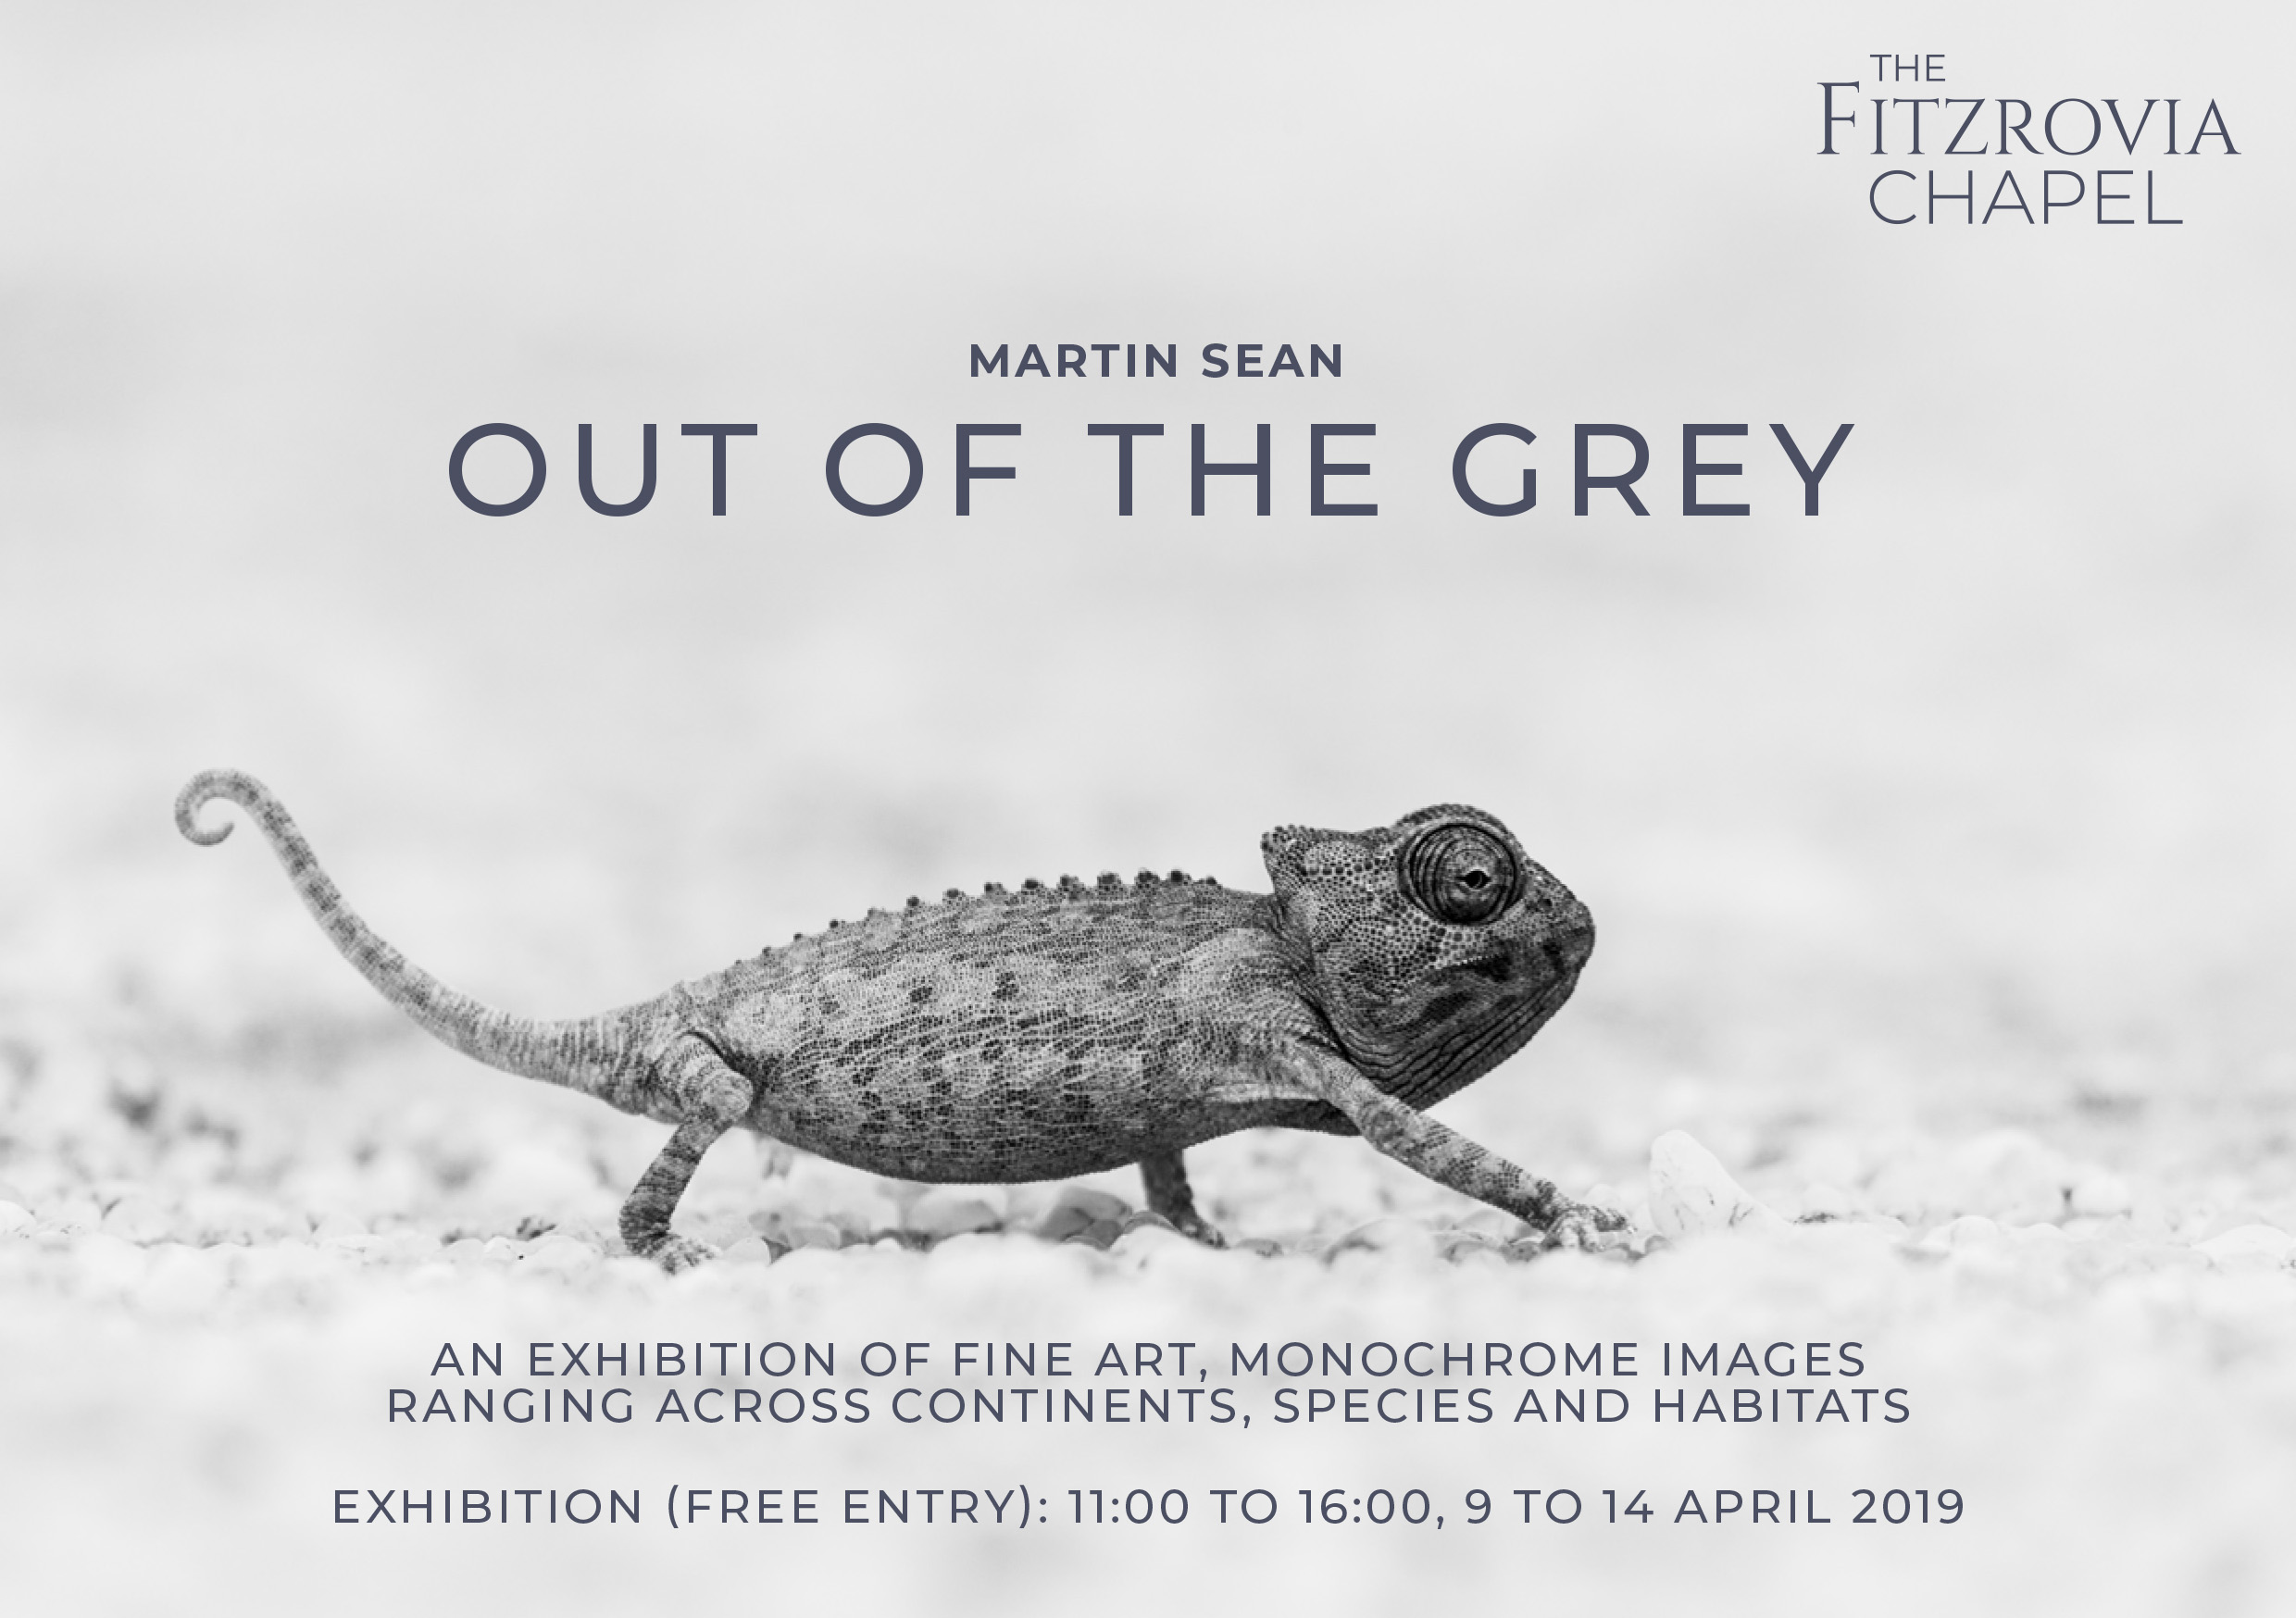 Out of the Grey focuses on large-scale black and white images from across continents, species and habitats.